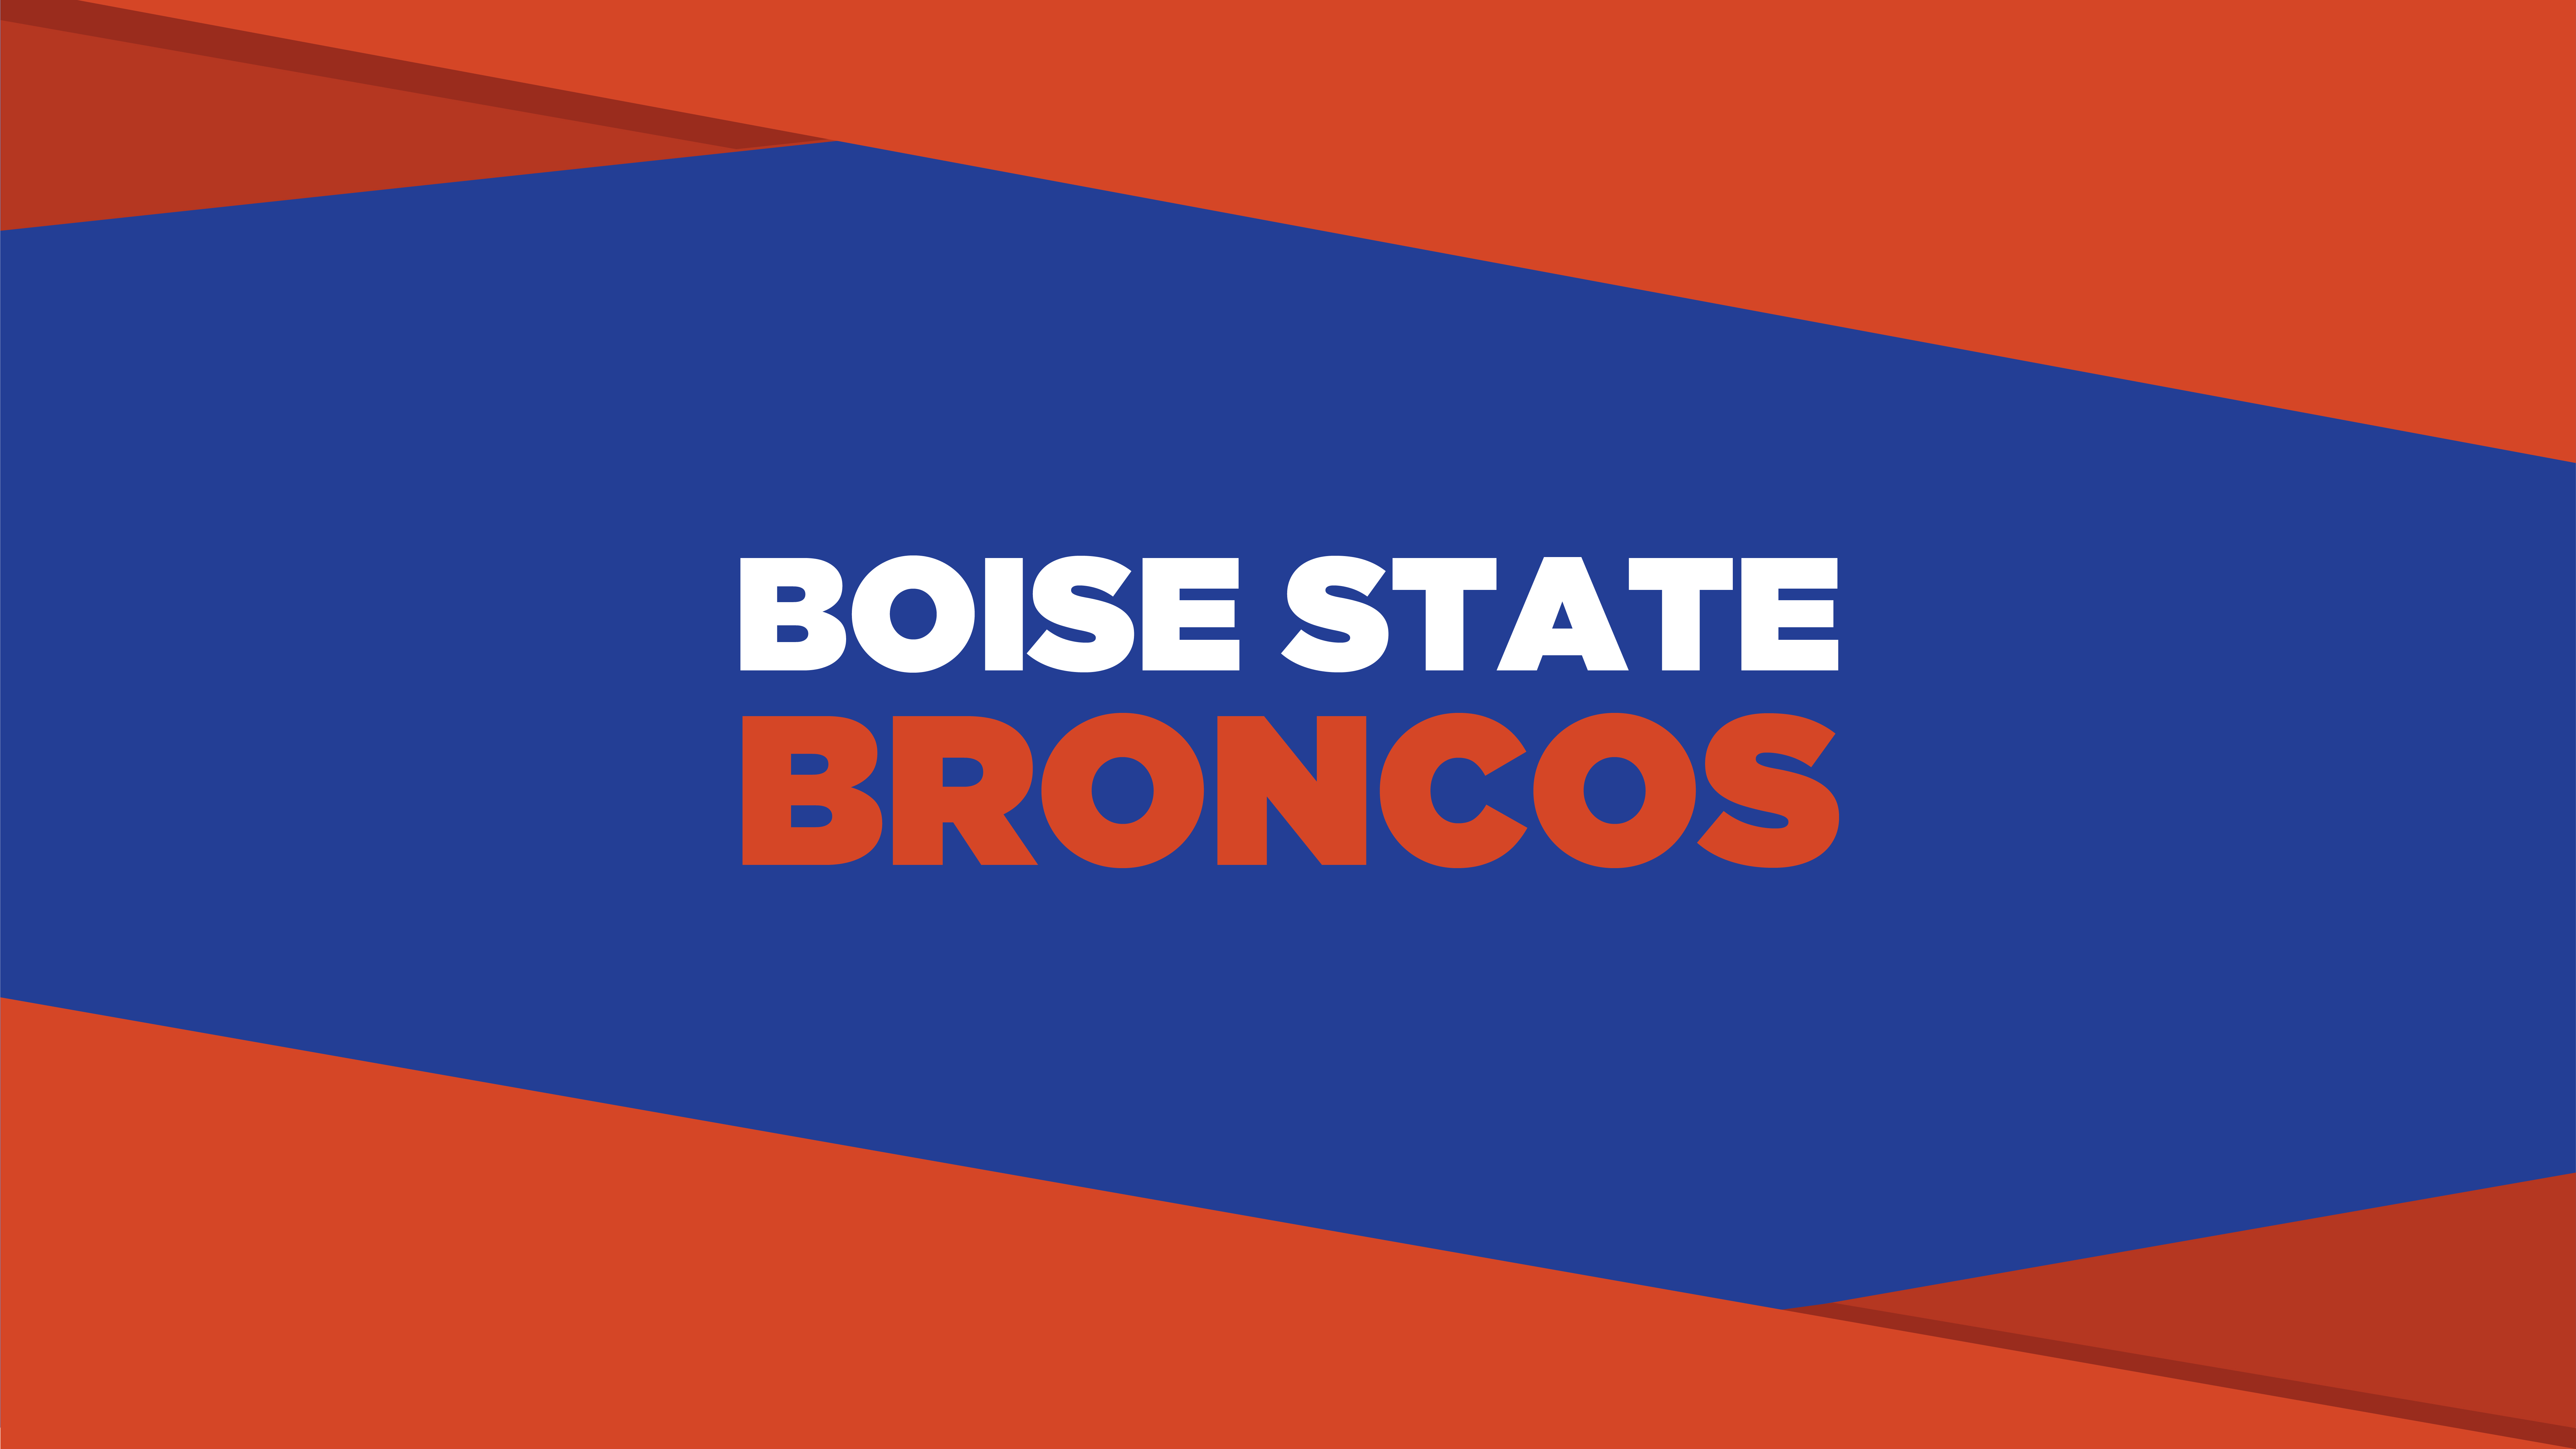 Boise State Broncos Blue and Orange Wallpaper